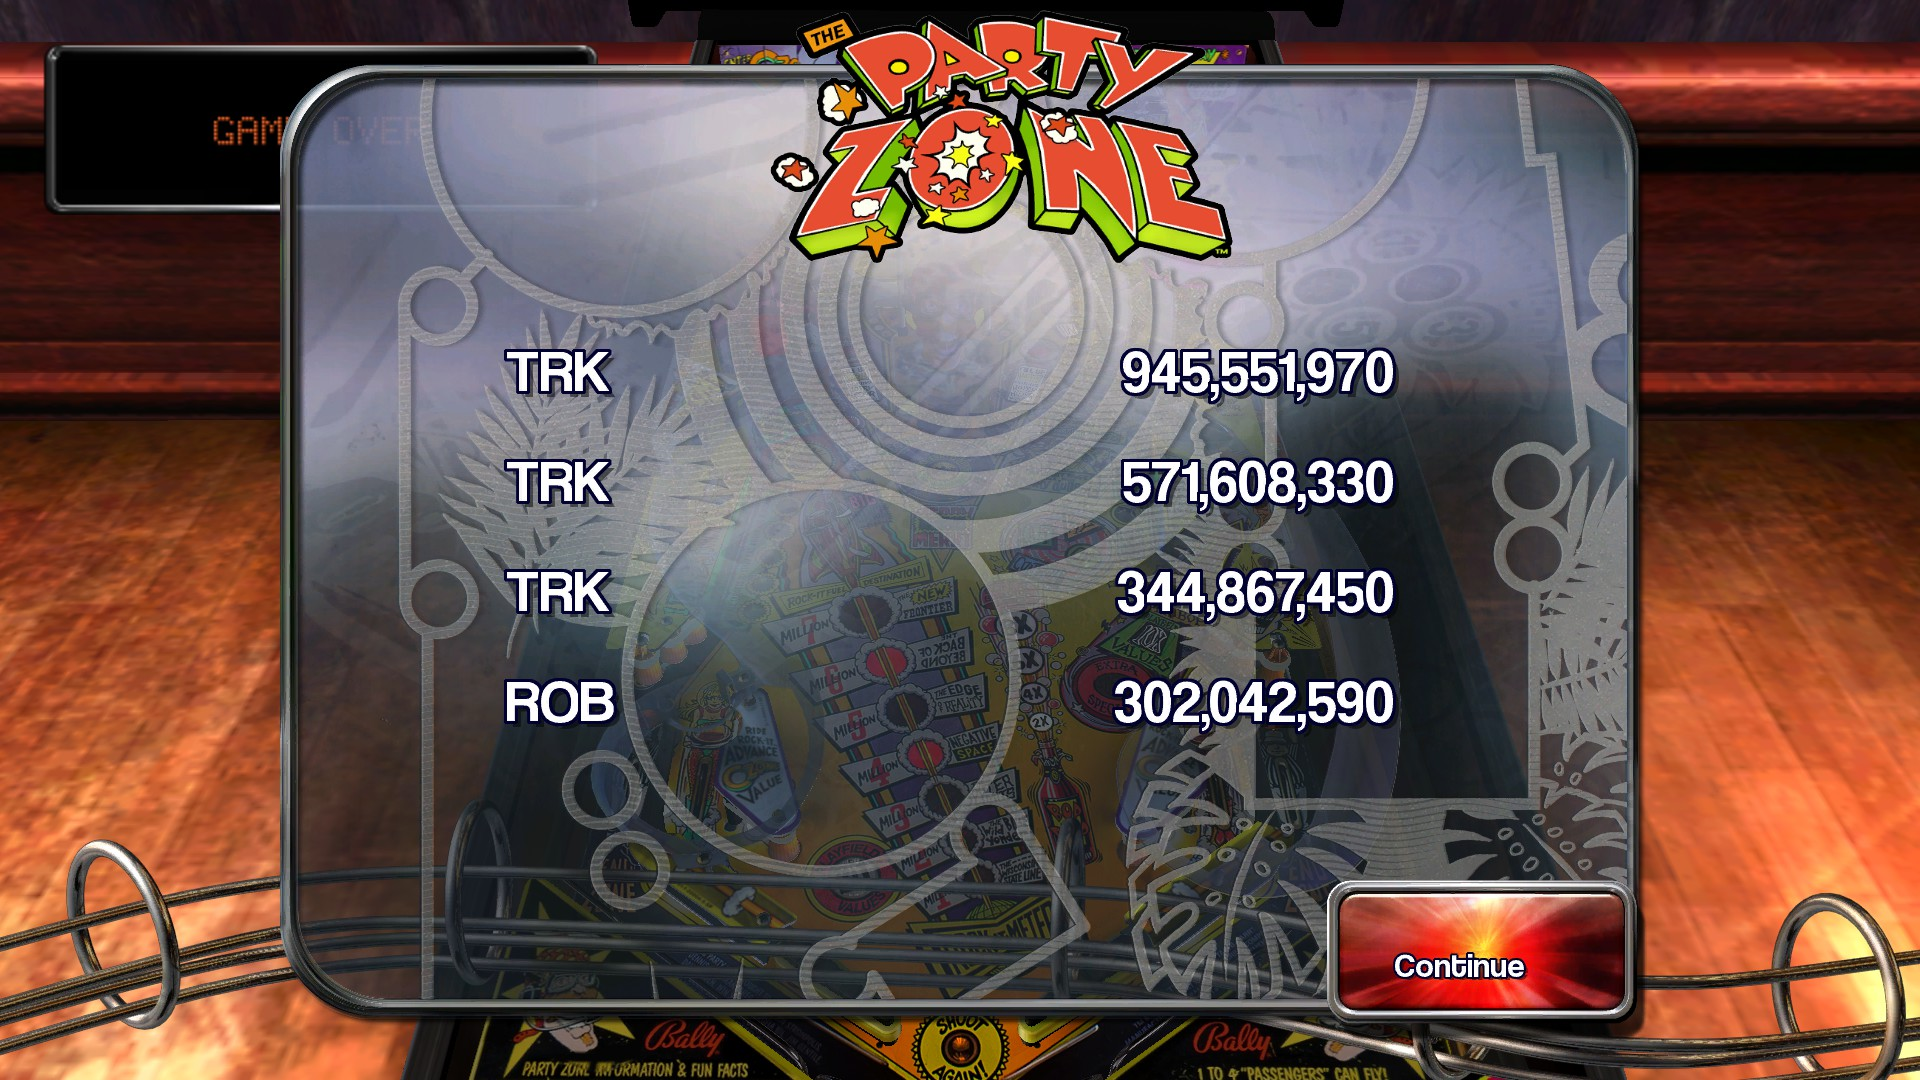 TheTrickster: Pinball Arcade: Party Zone (PC) 945,551,970 points on 2016-05-20 09:35:39